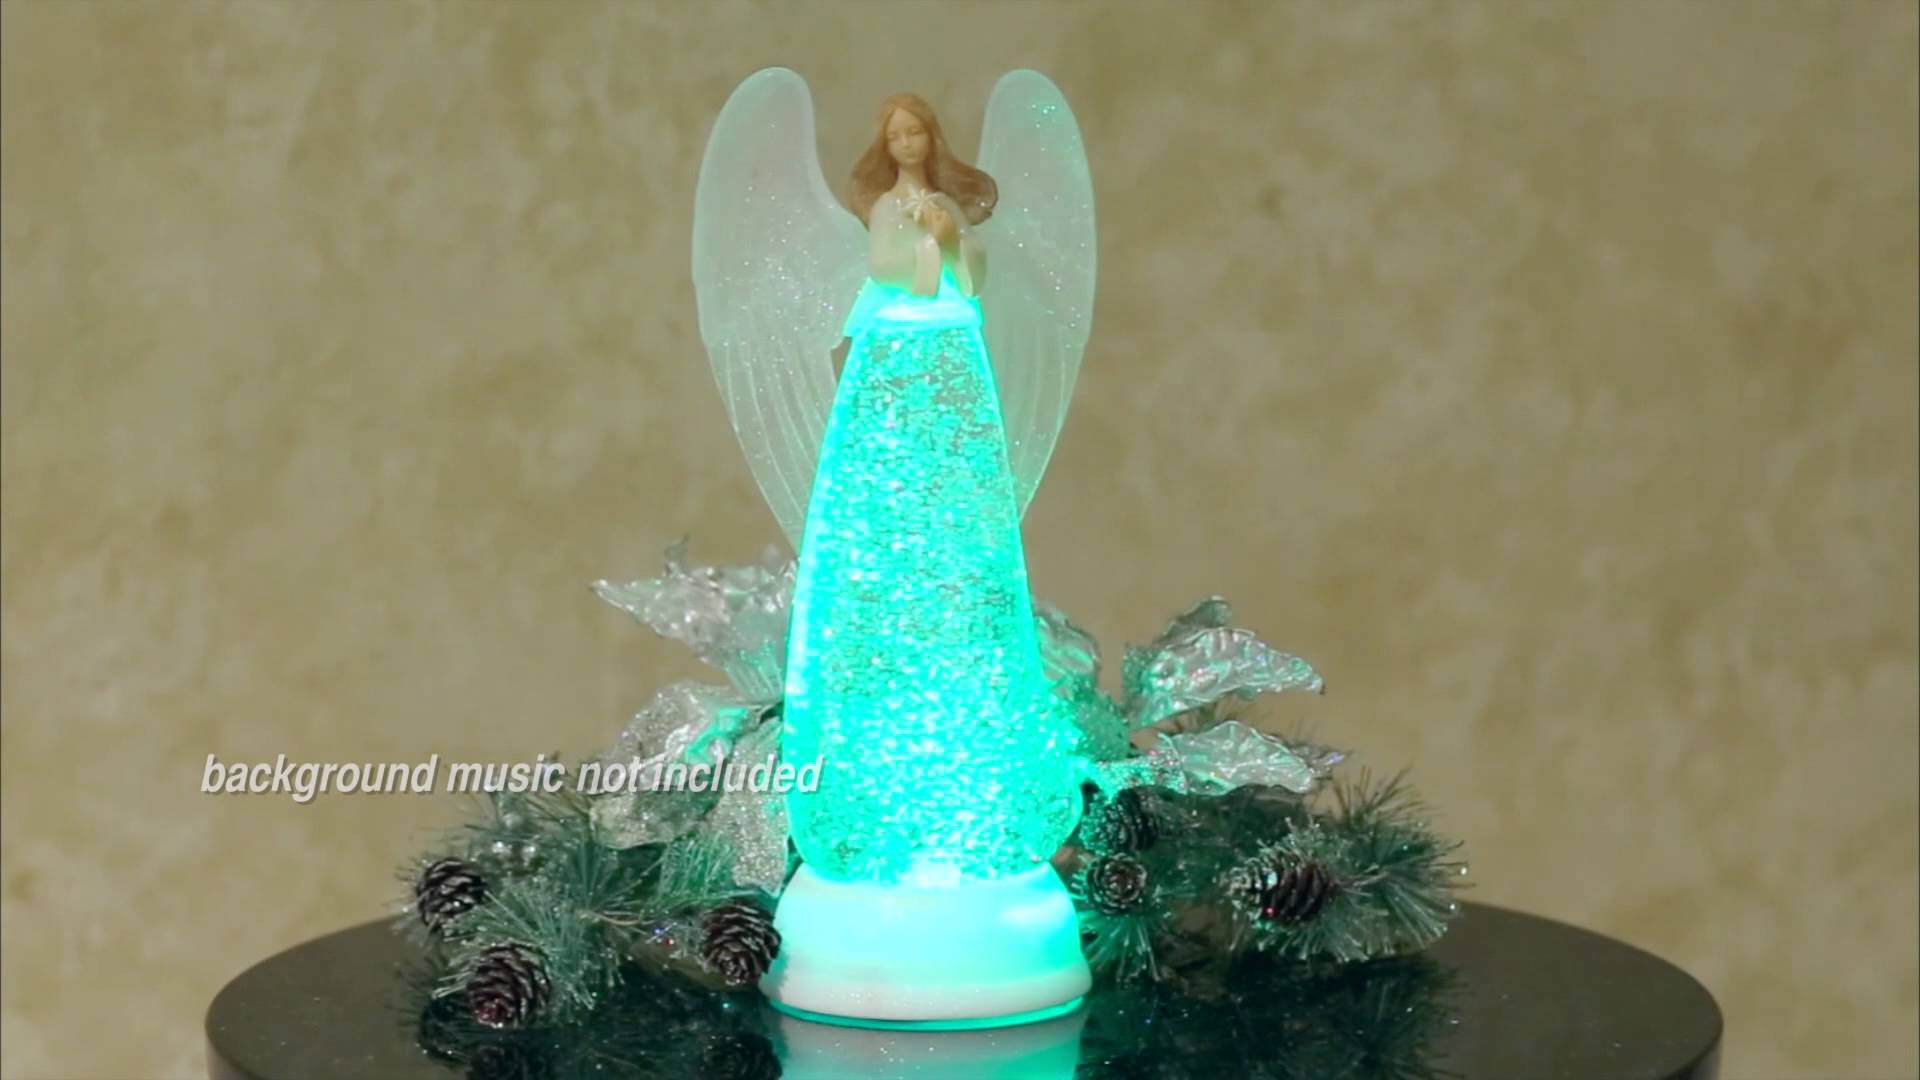 Angel Glitterdome Lighted Table Sculpture